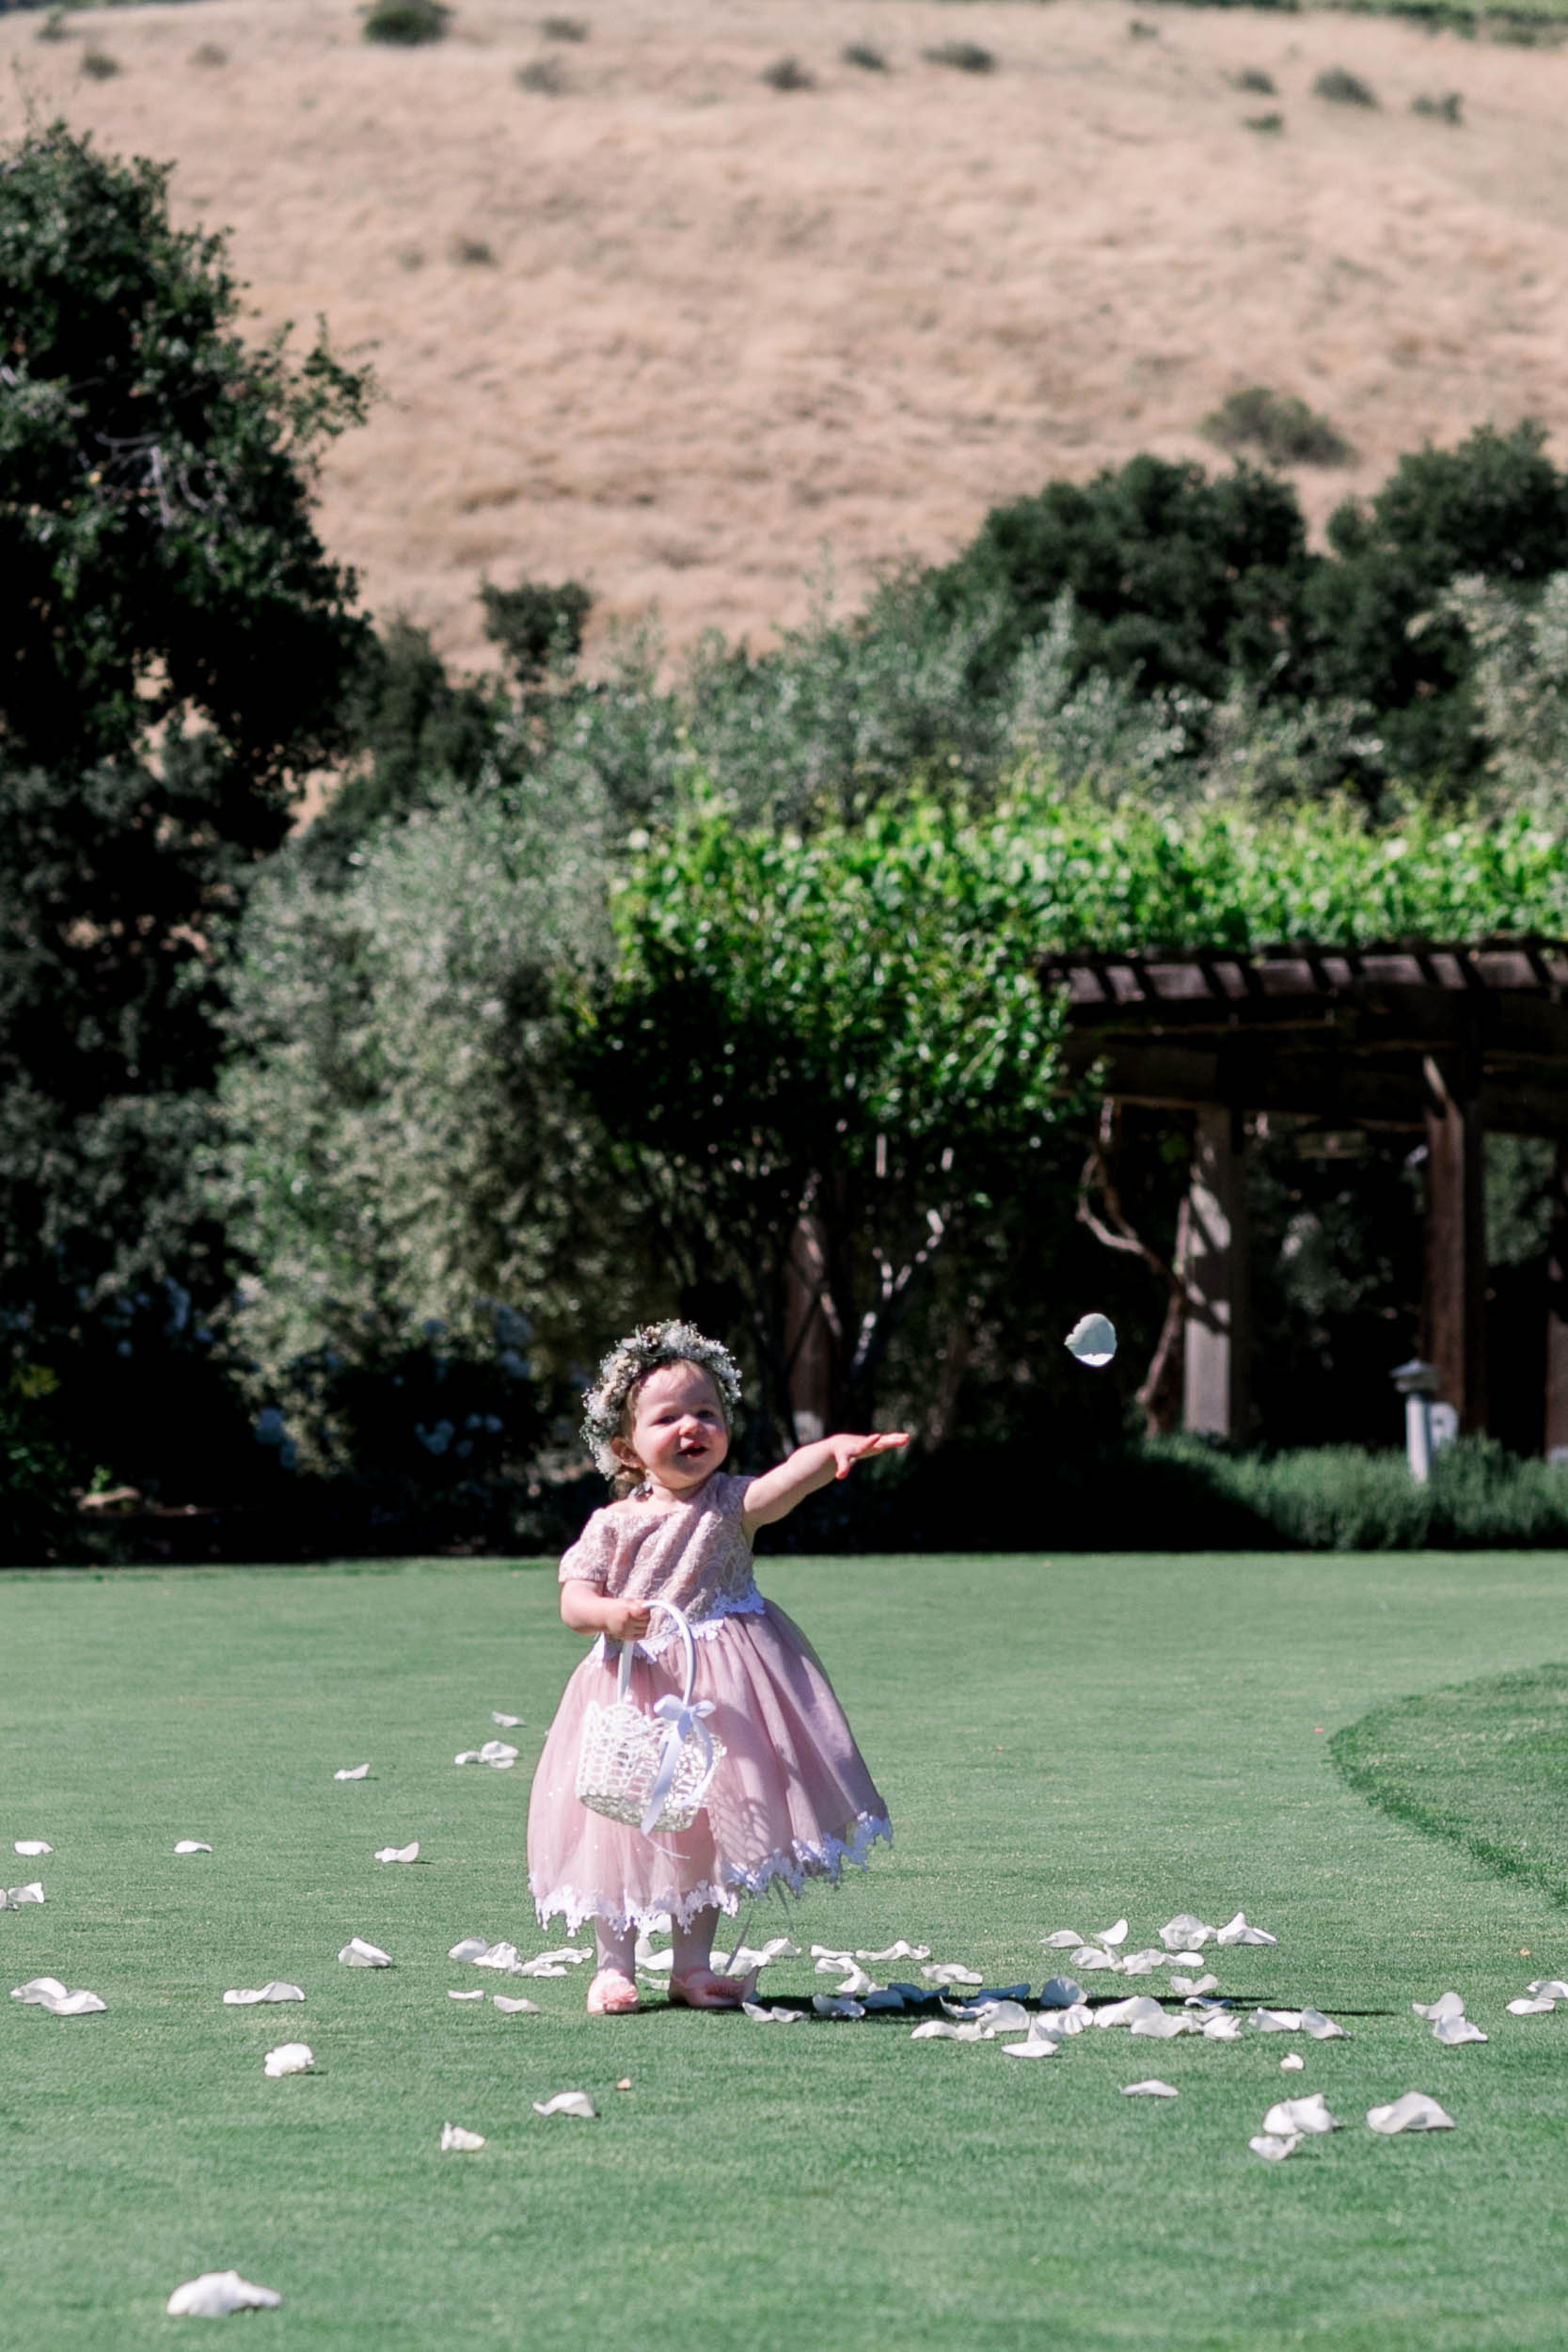 C+D_Holman Ranch Wedding_Carmel Valley_Buena Lane Photography_060619_ER223.jpg